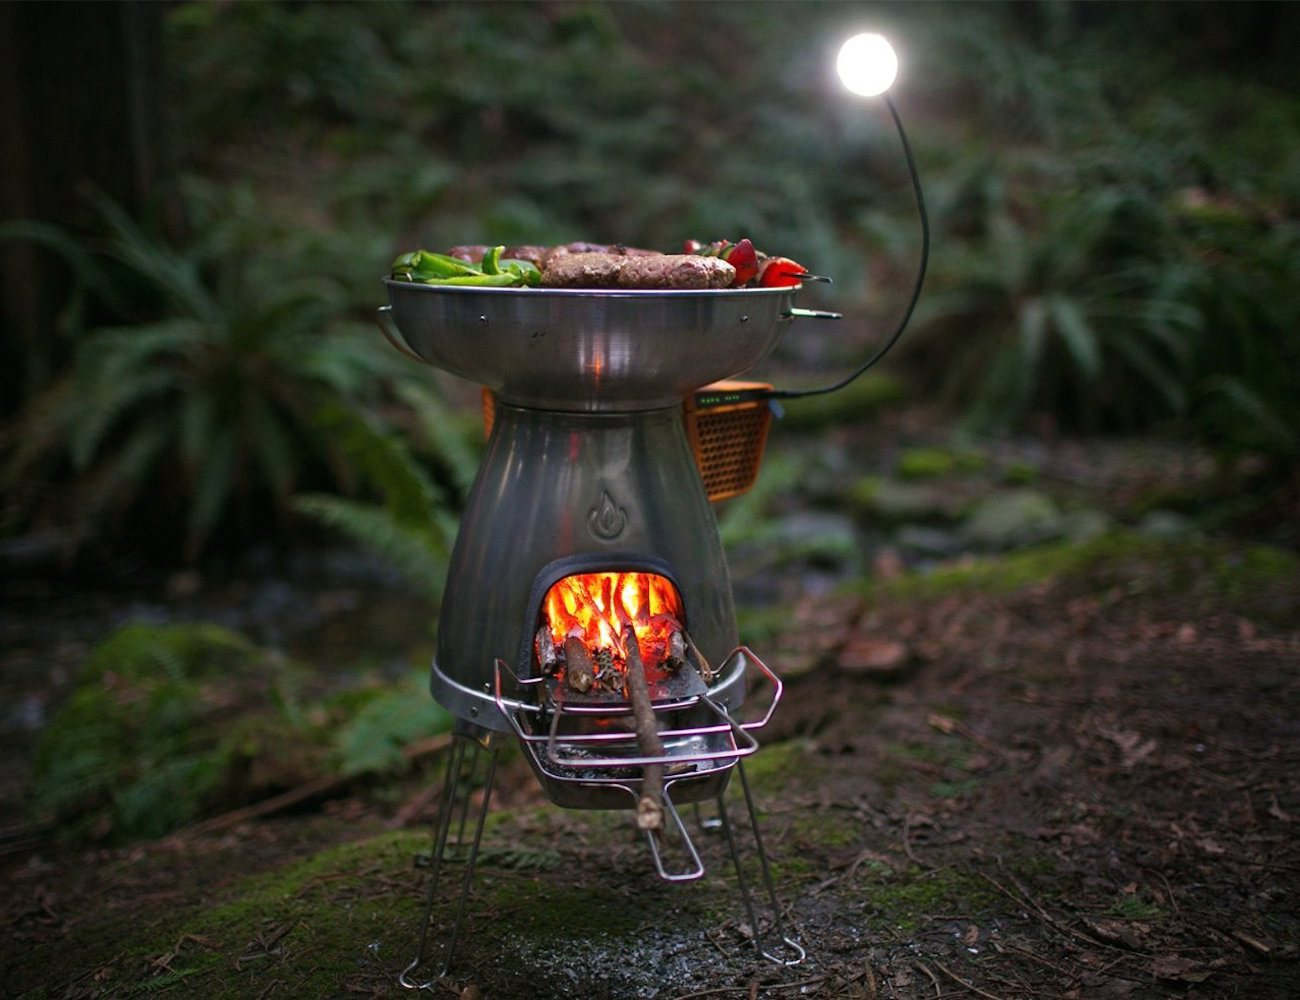 Basecamp Wood Burning Stove And Grill By Biolite 187 Review